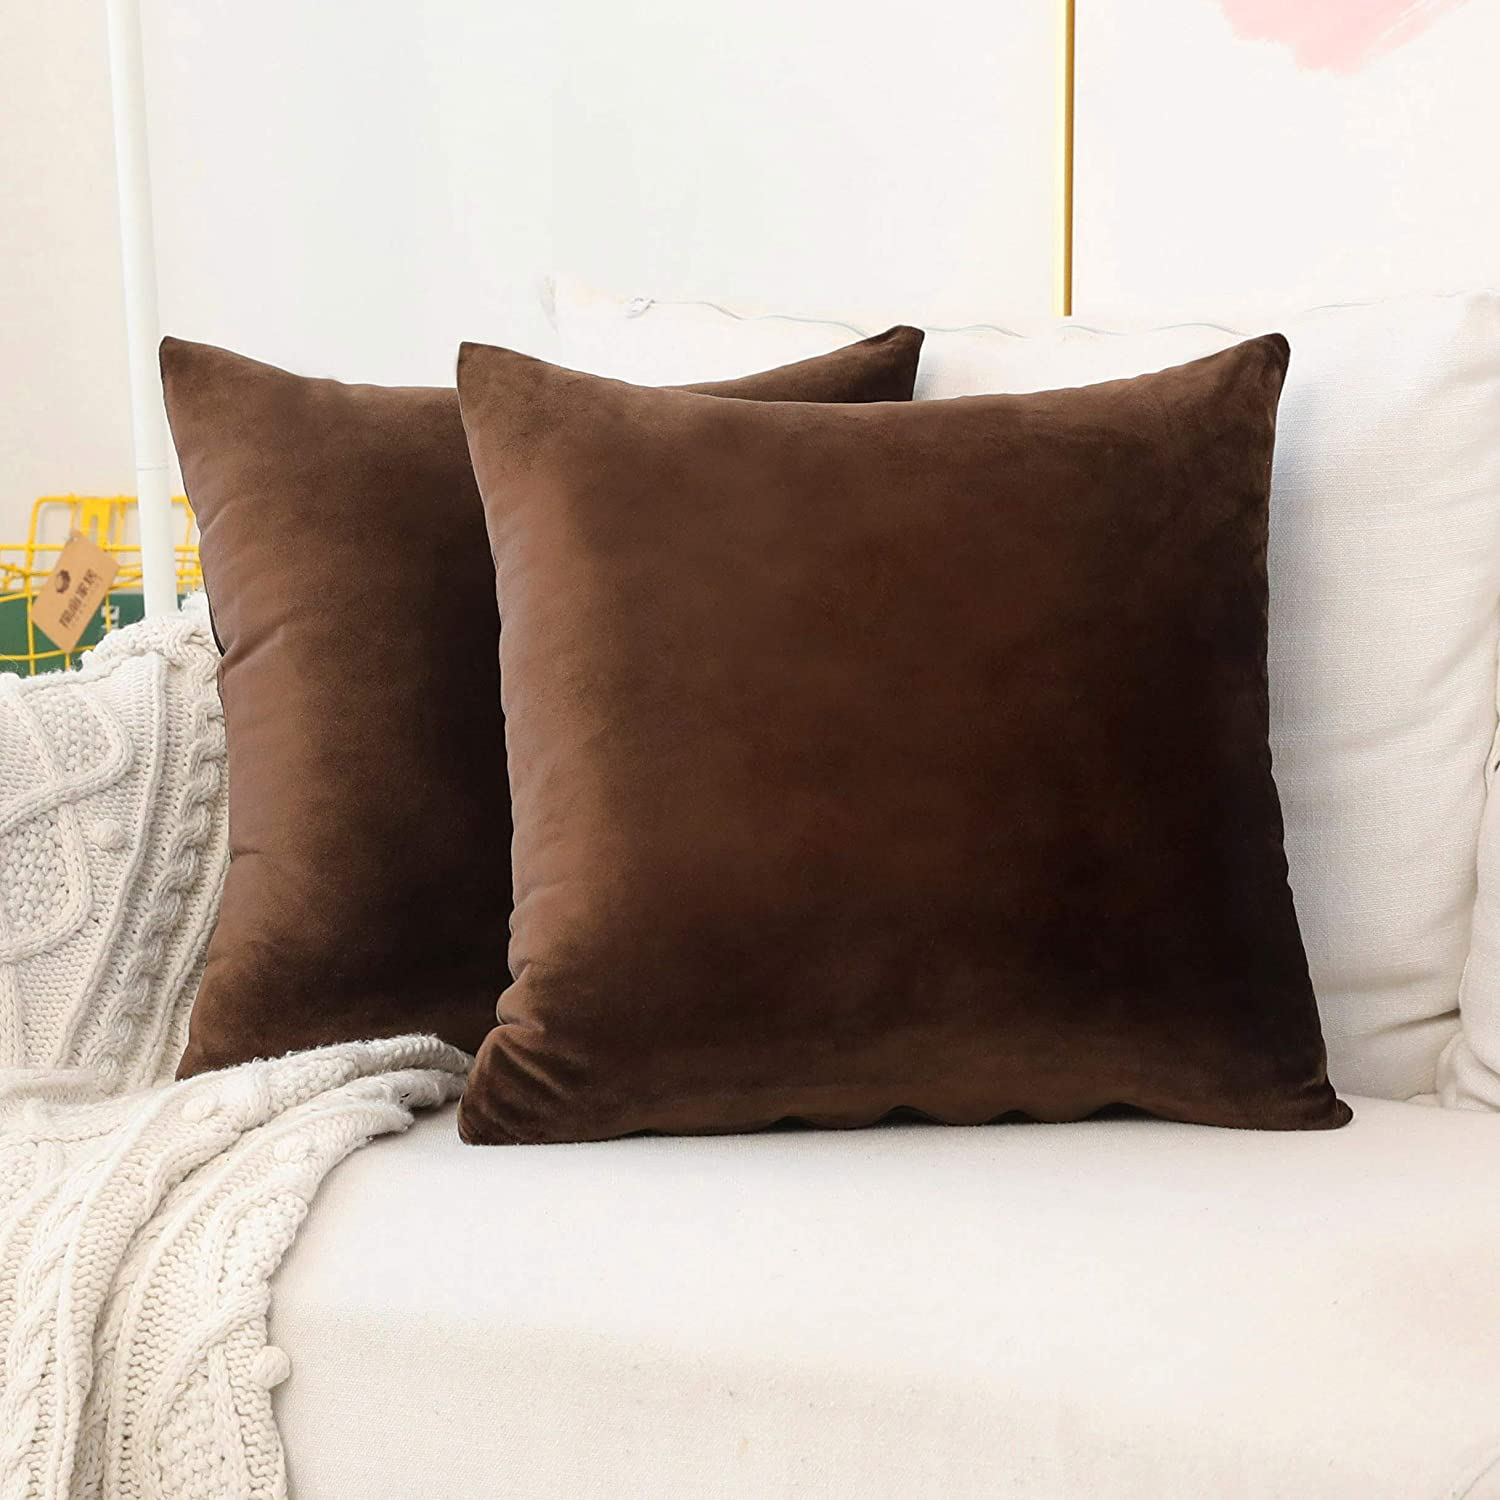 Home Brilliant Velvet Euro Shams Large Cushion Covers Pillow Case for Bedroom Floor Couch, Set of 2, 26 x 26 Inch(66cm), Brown